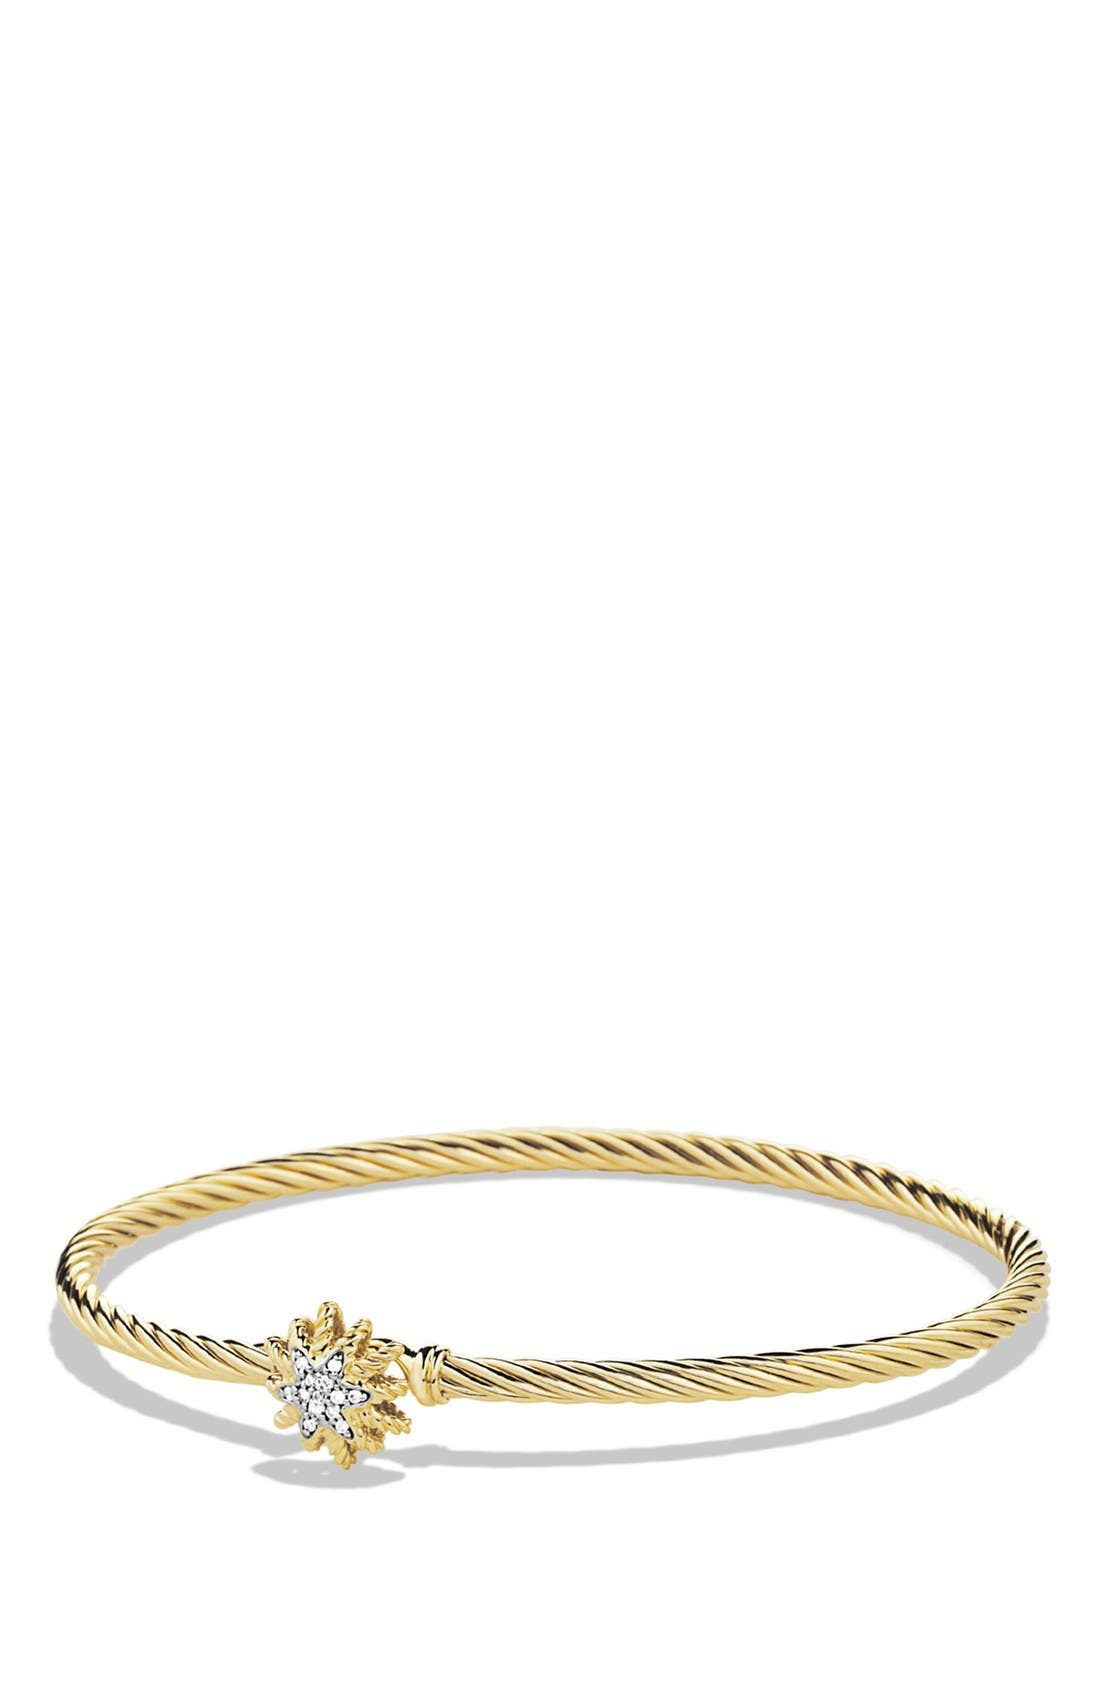 Main Image - David Yurman 'Starburst' Single-Station Cable Bracelet with Diamonds in Gold